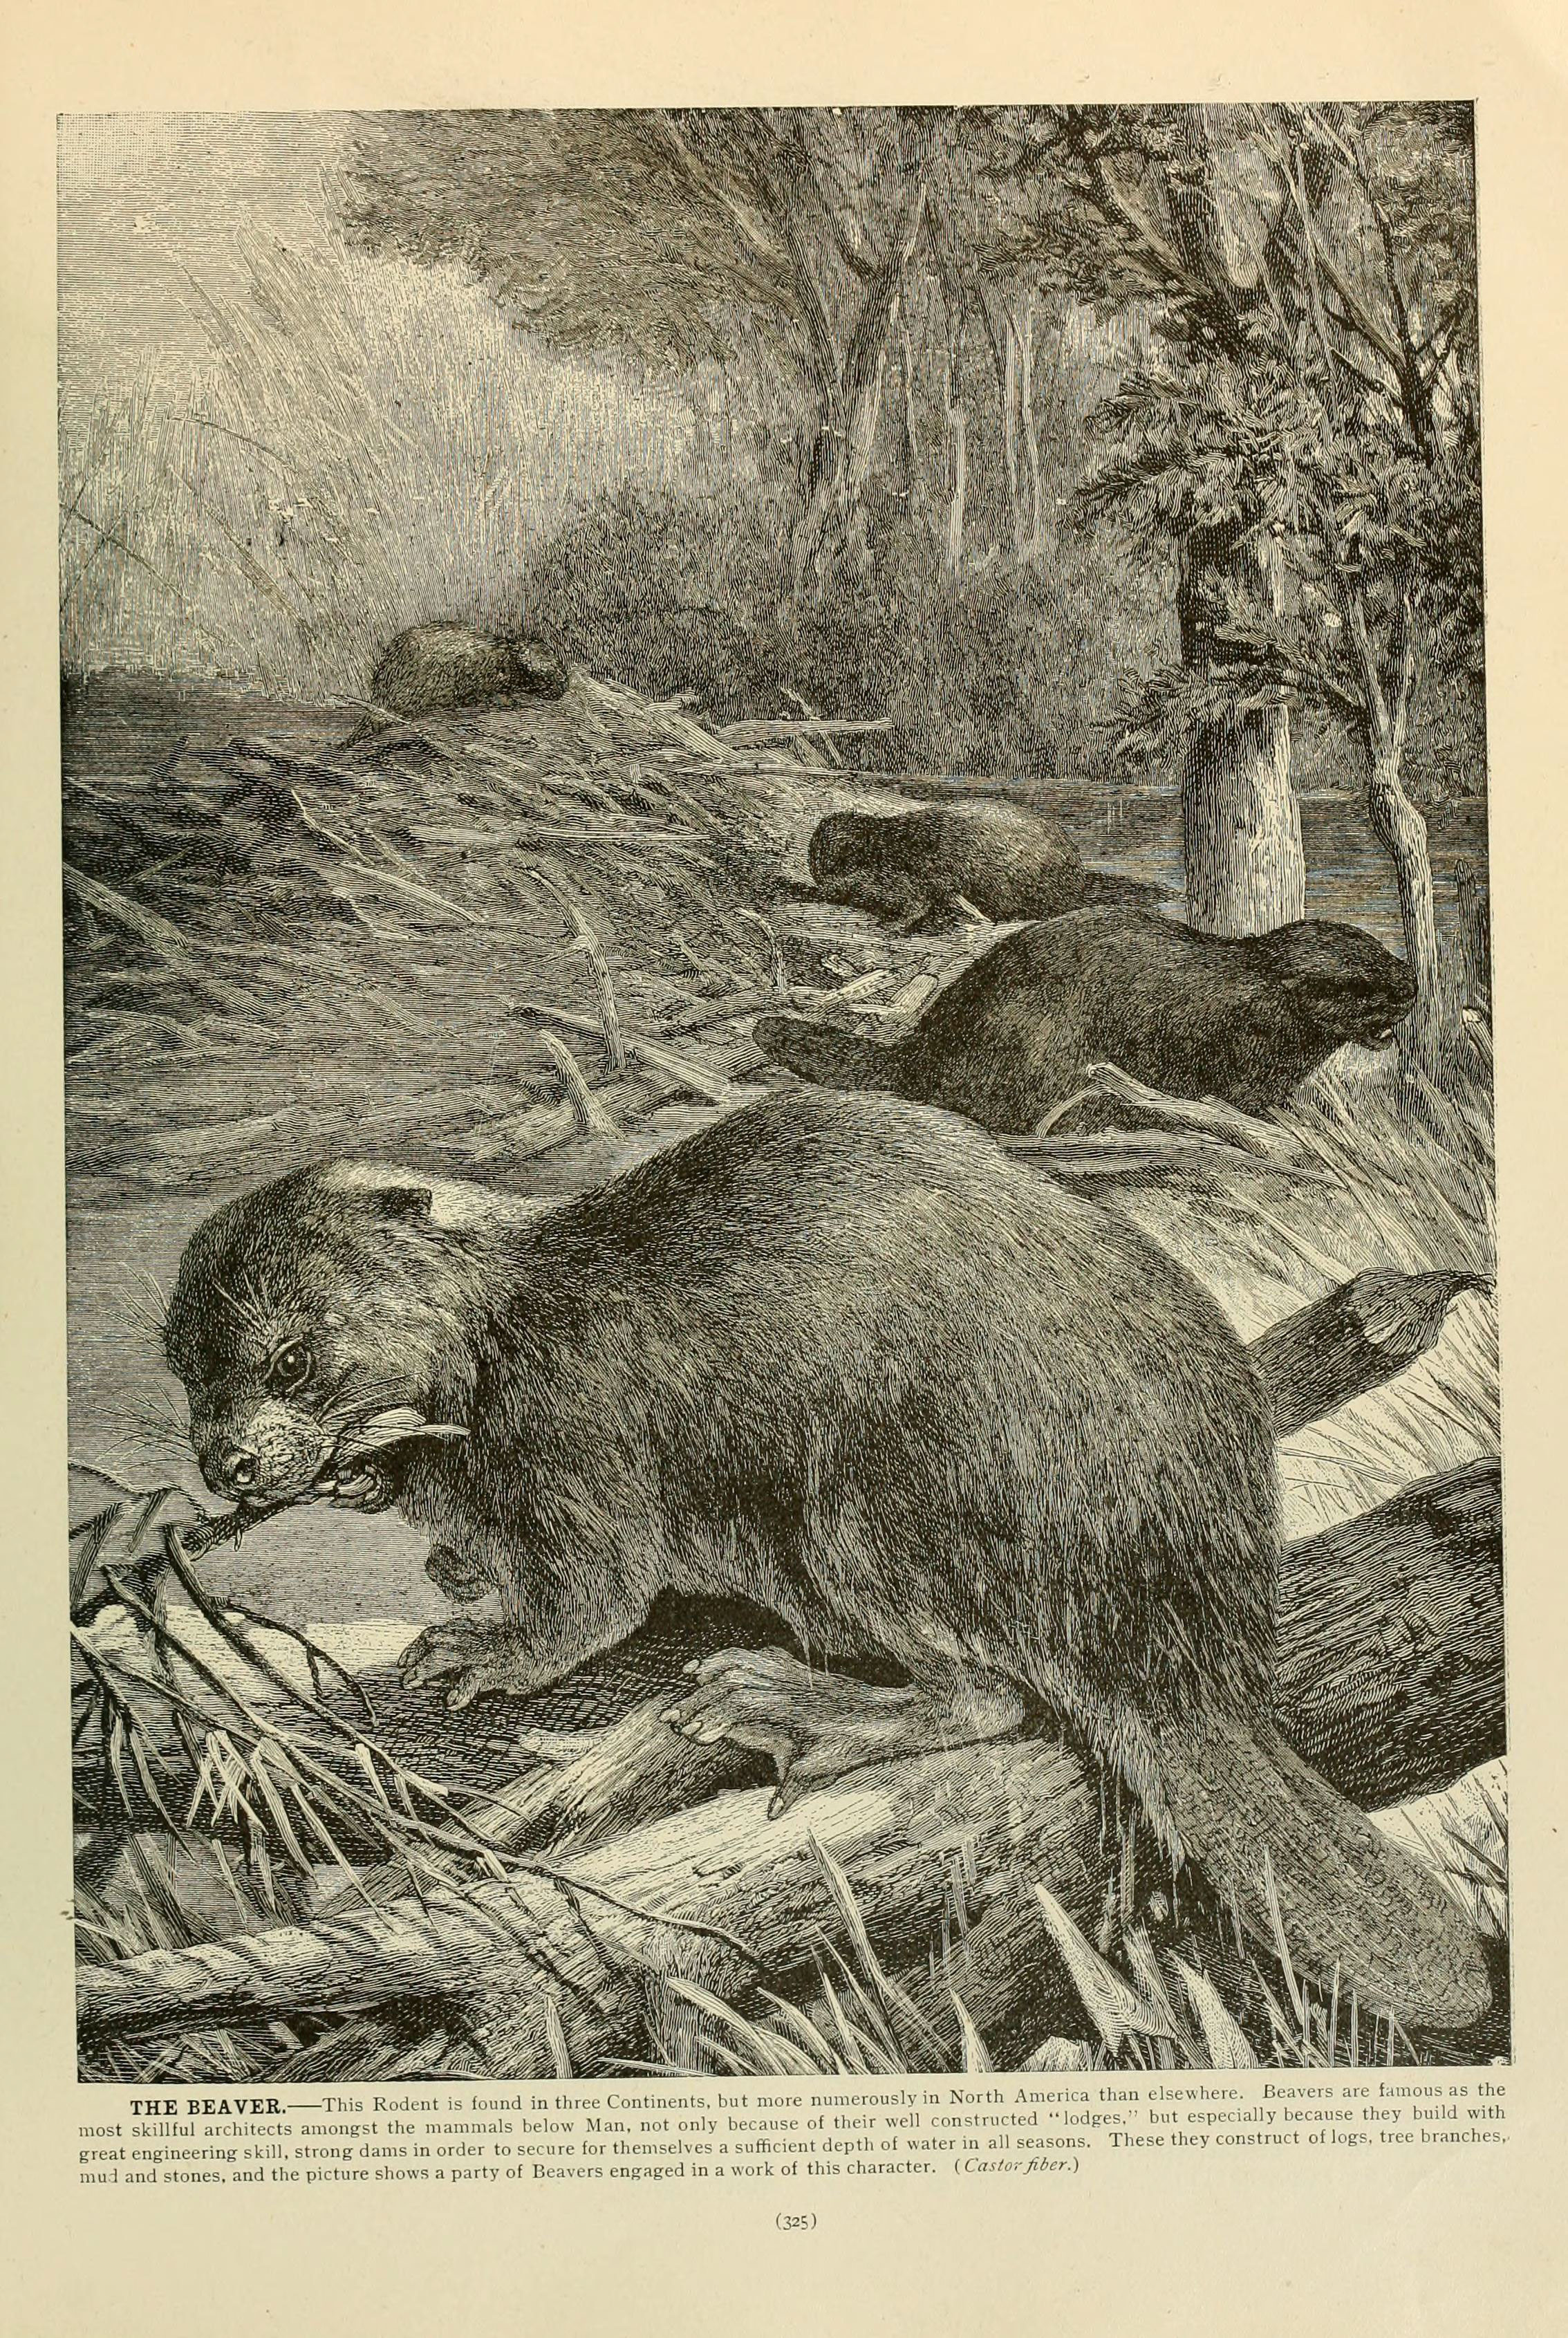 Image of European beaver